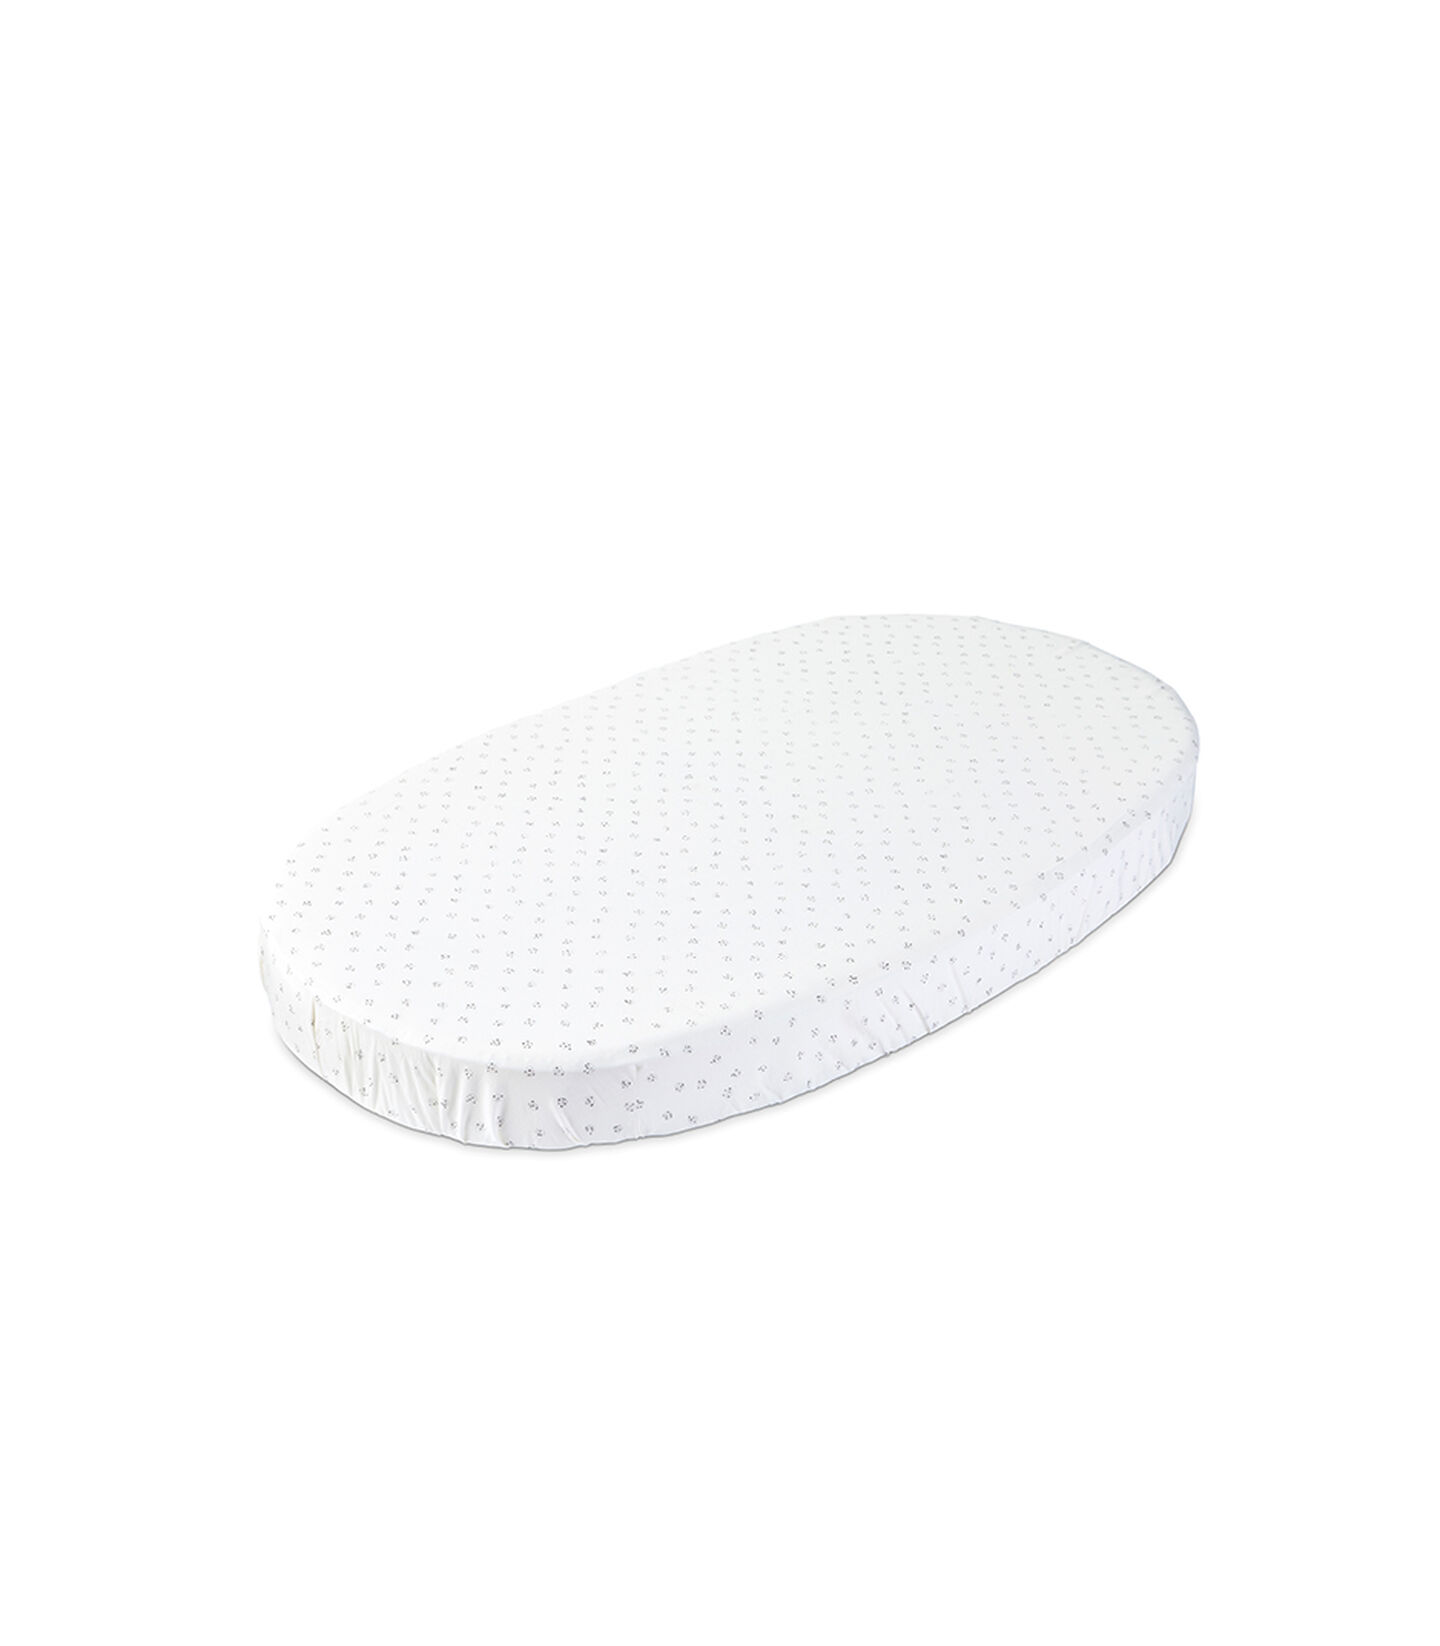 Stokke® Sleepi™ Fitted Sheet Pehr Grey Dotty, Grey Dotty, mainview view 2